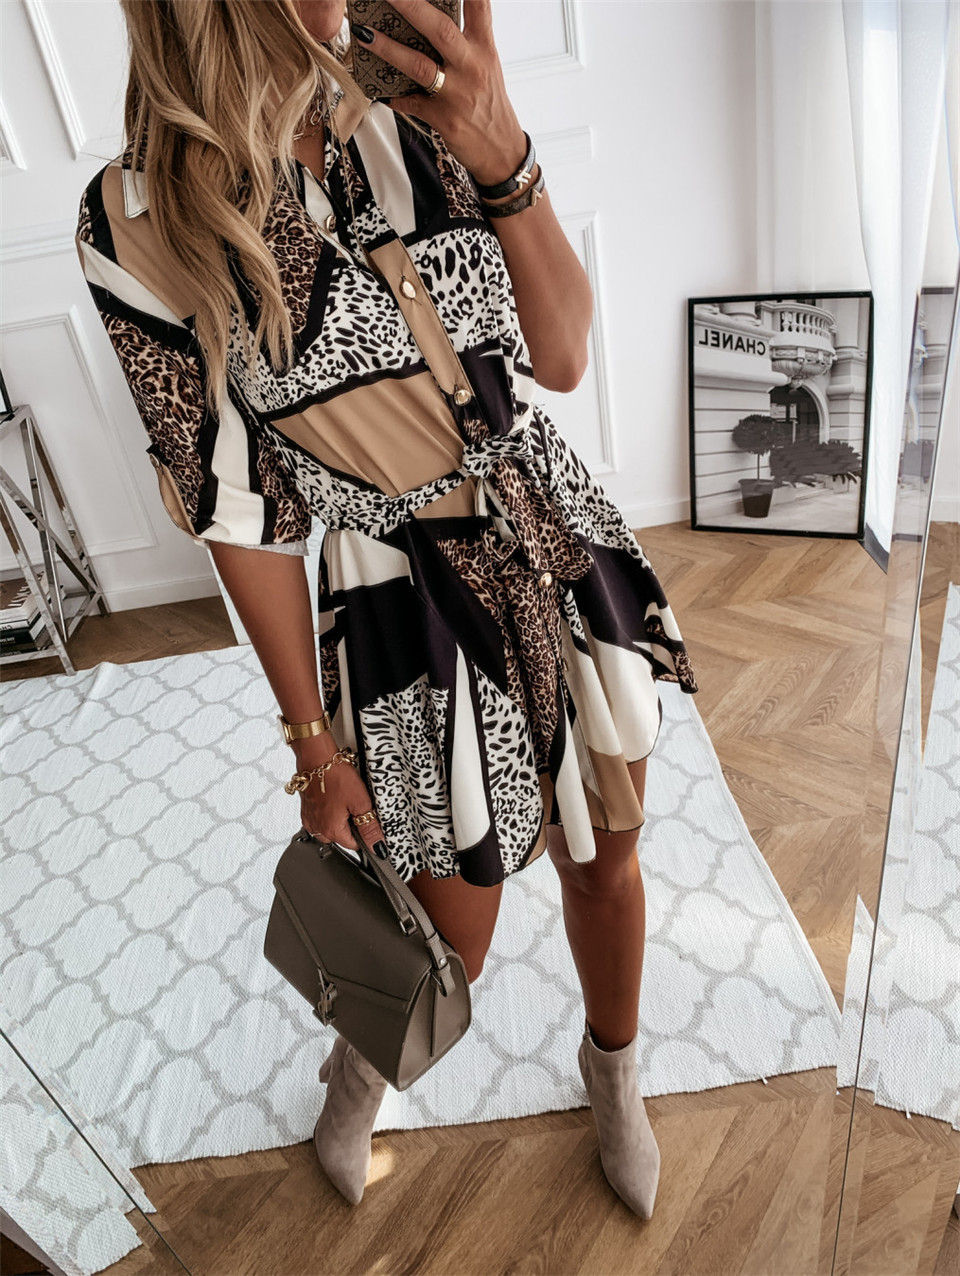 autumn and winter new long-sleeved fashion sexy printed shirt dress NSYD3738